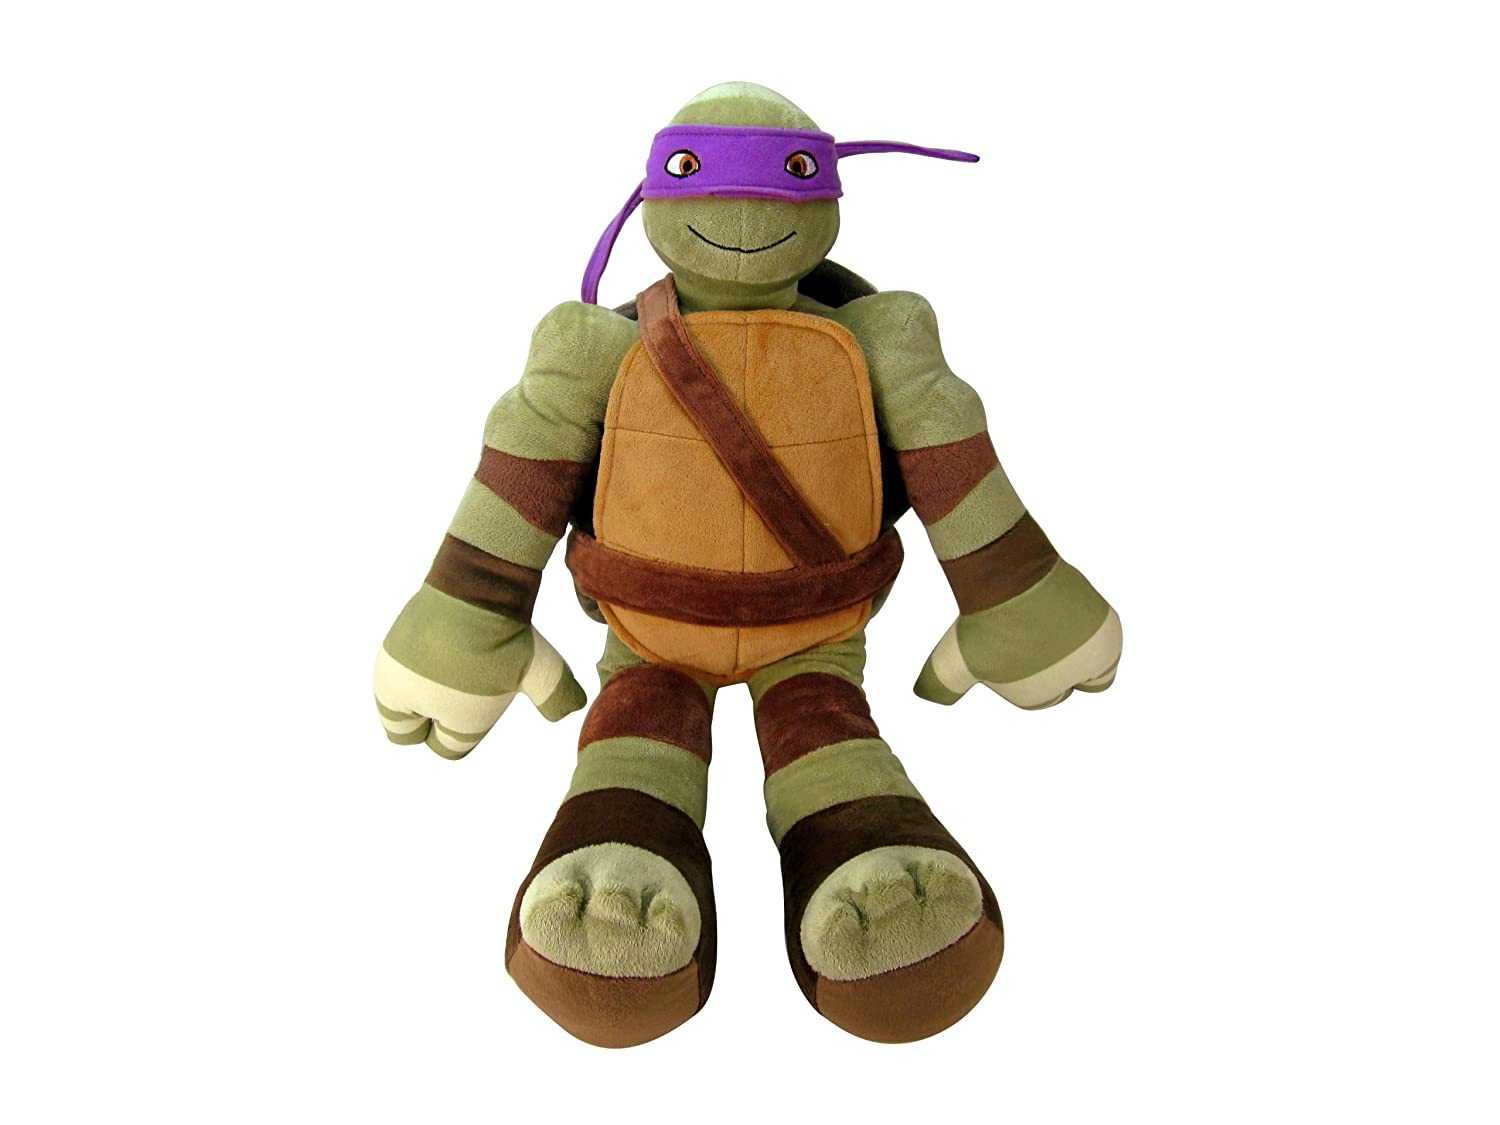 Teenage Mutant Ninja Turtles Pillowtime Pal Pillow, Donatello